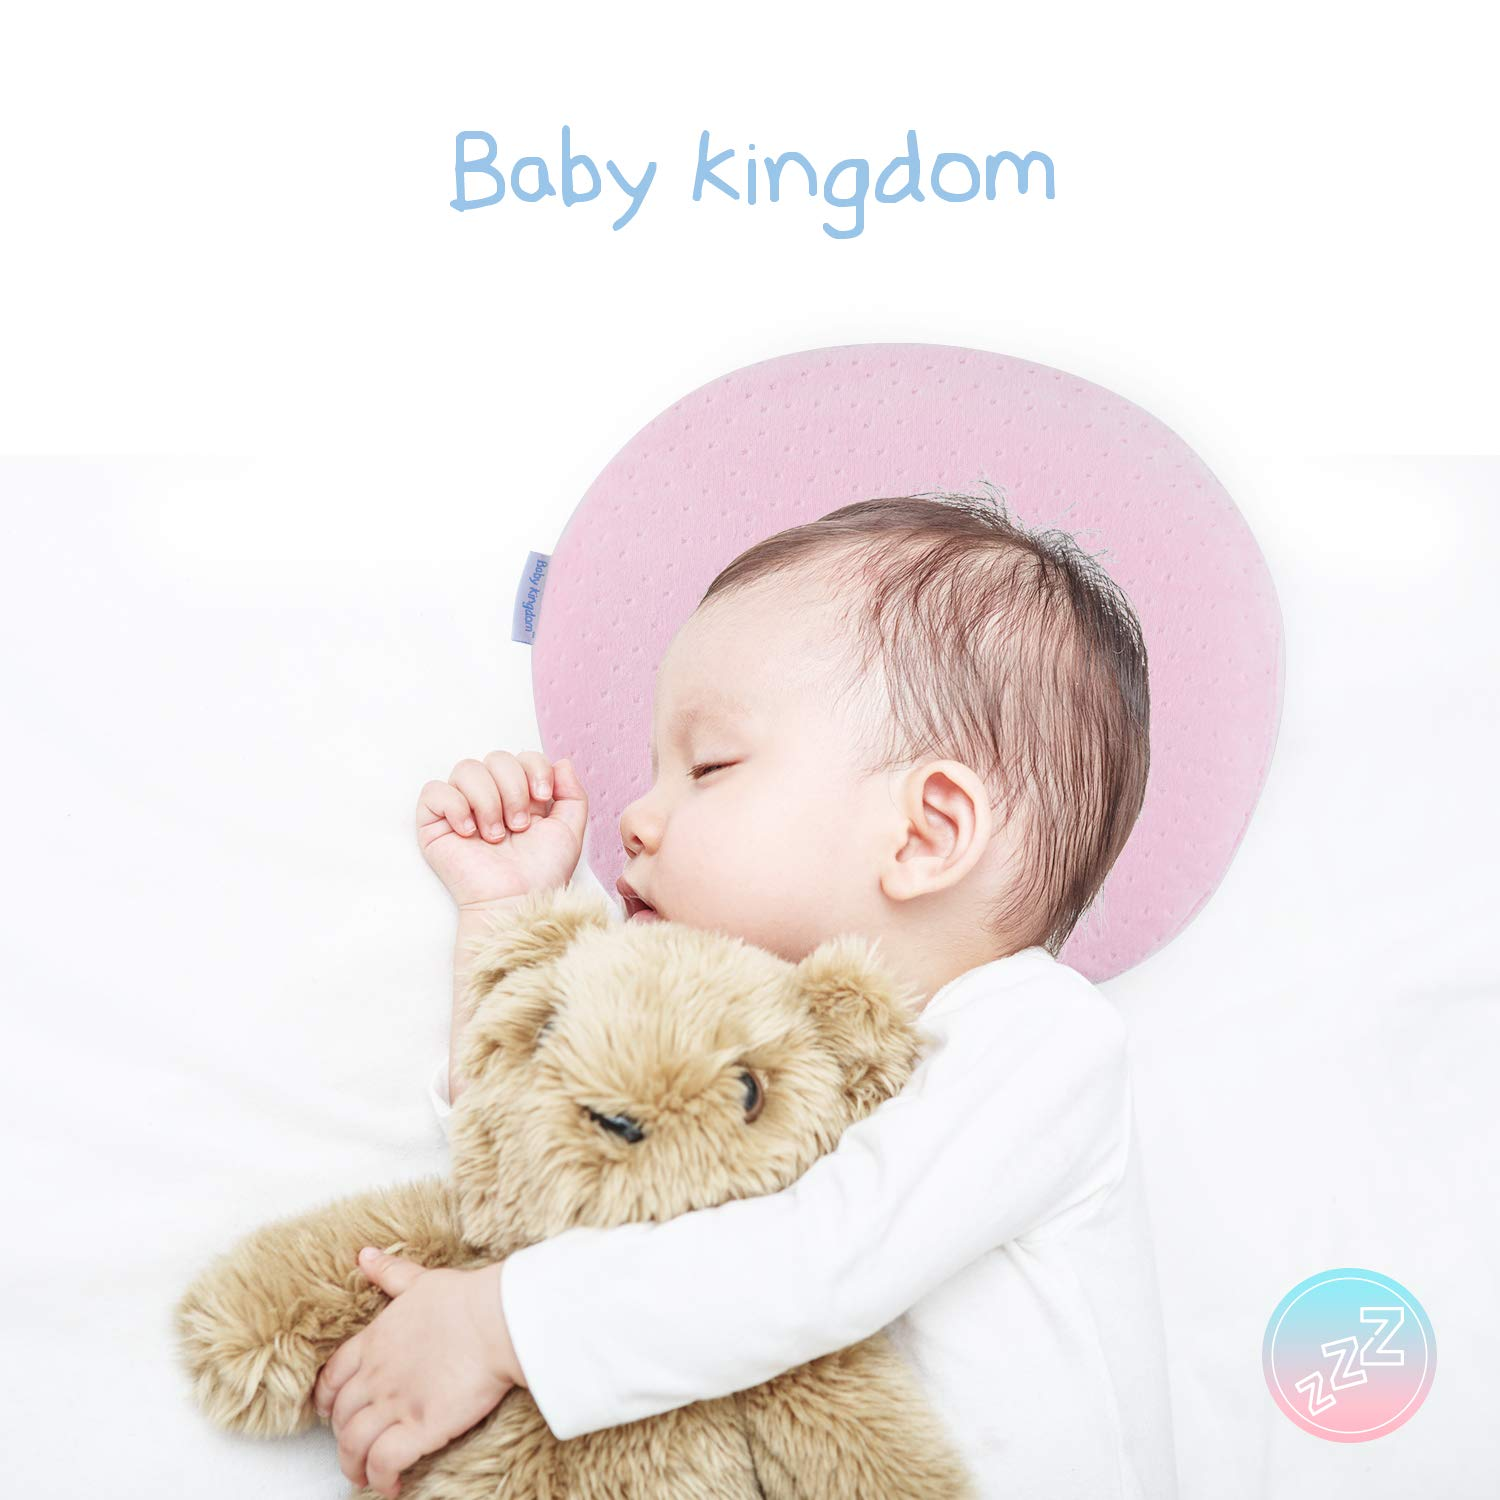 BBKD Baby Pillow | Infants Newborn Head Shaping Pillow|Prevent Flat Head Syndrome | Made of Memory Foam and Comes with 2 Cotton Pillowcases | Baby Shower & Registry Gift (Pink)